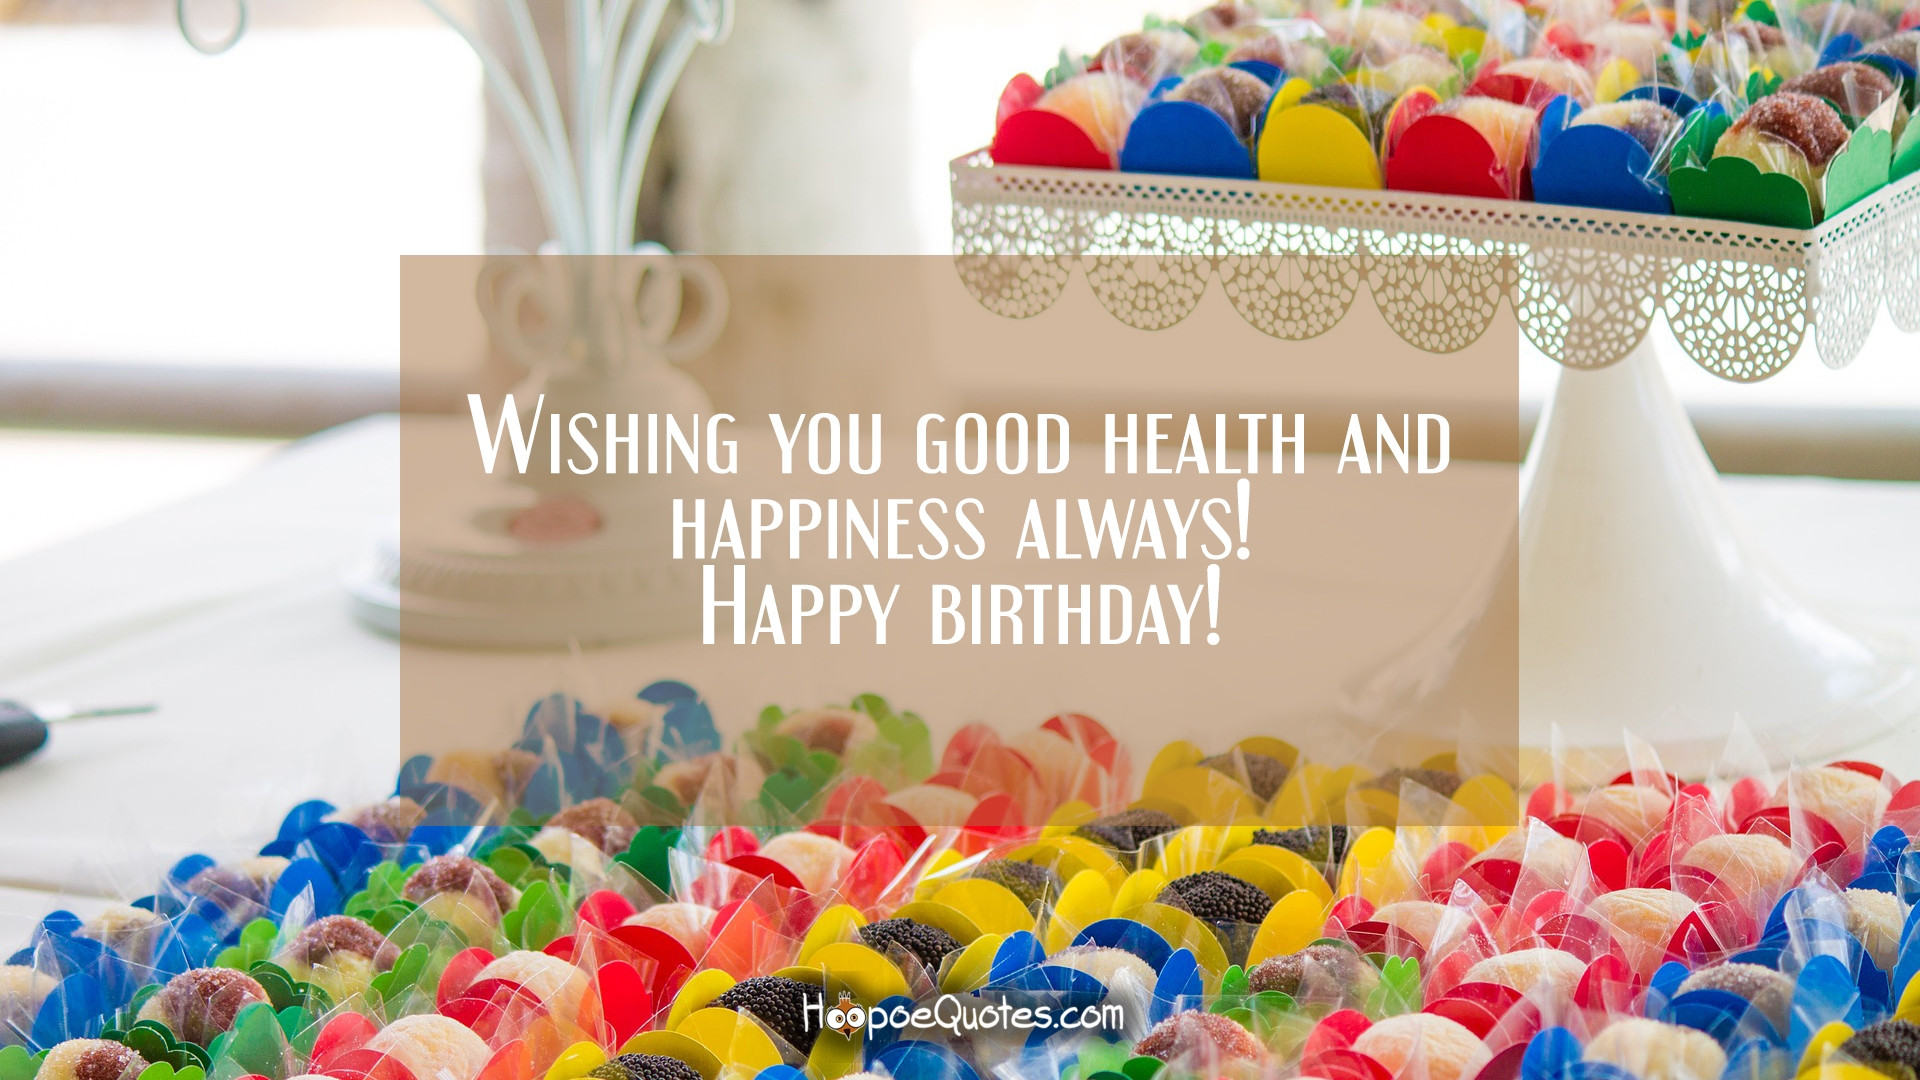 Best ideas about Good Birthday Wishes . Save or Pin Wishing you good health and happiness always Happy Now.